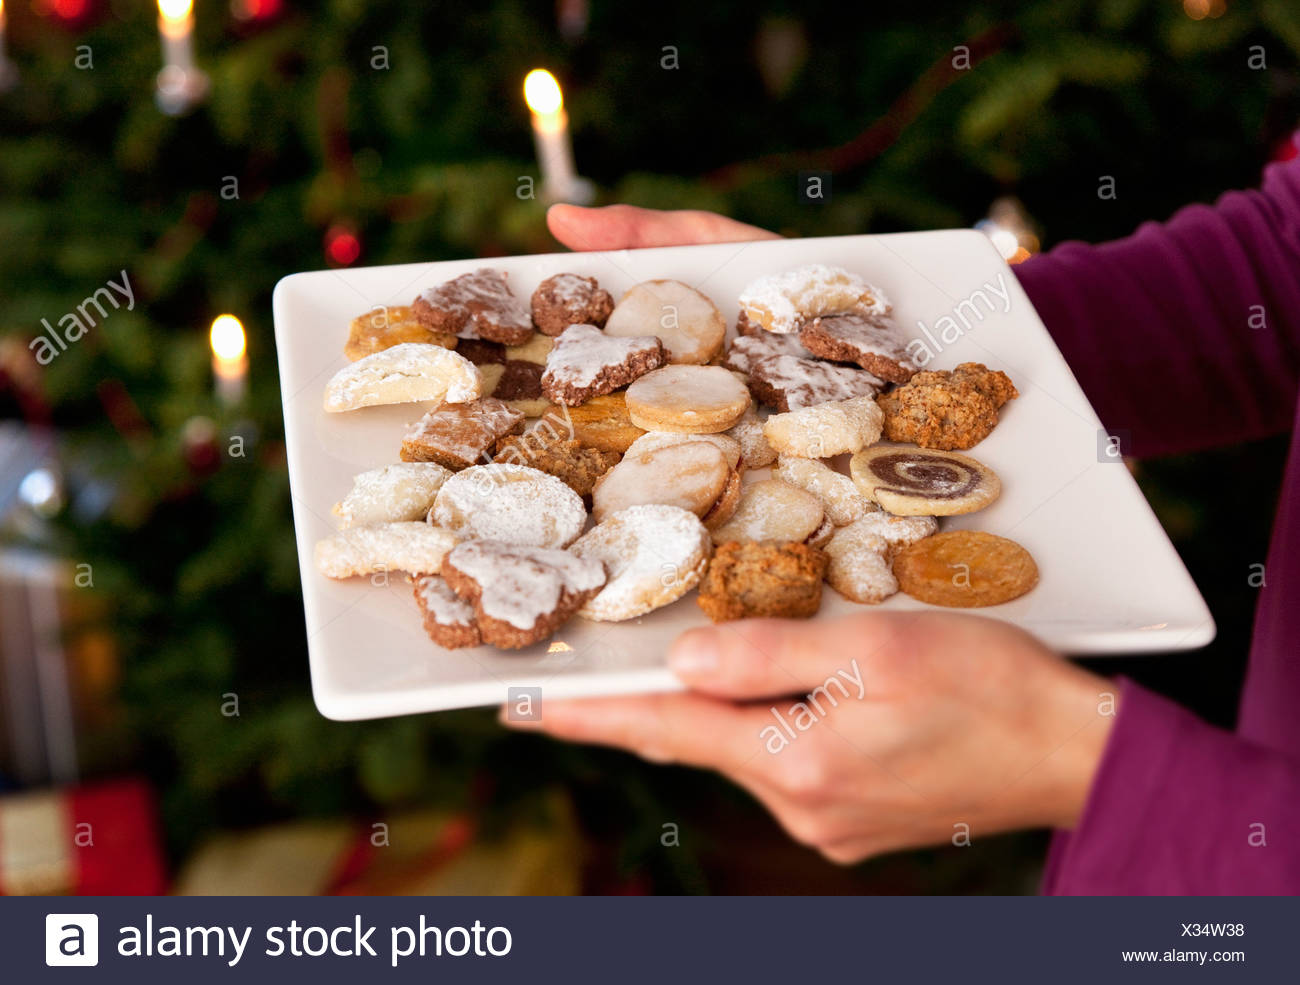 Plate Of Homemade Christmas Biscuits Stock Photo 277317356 Alamy